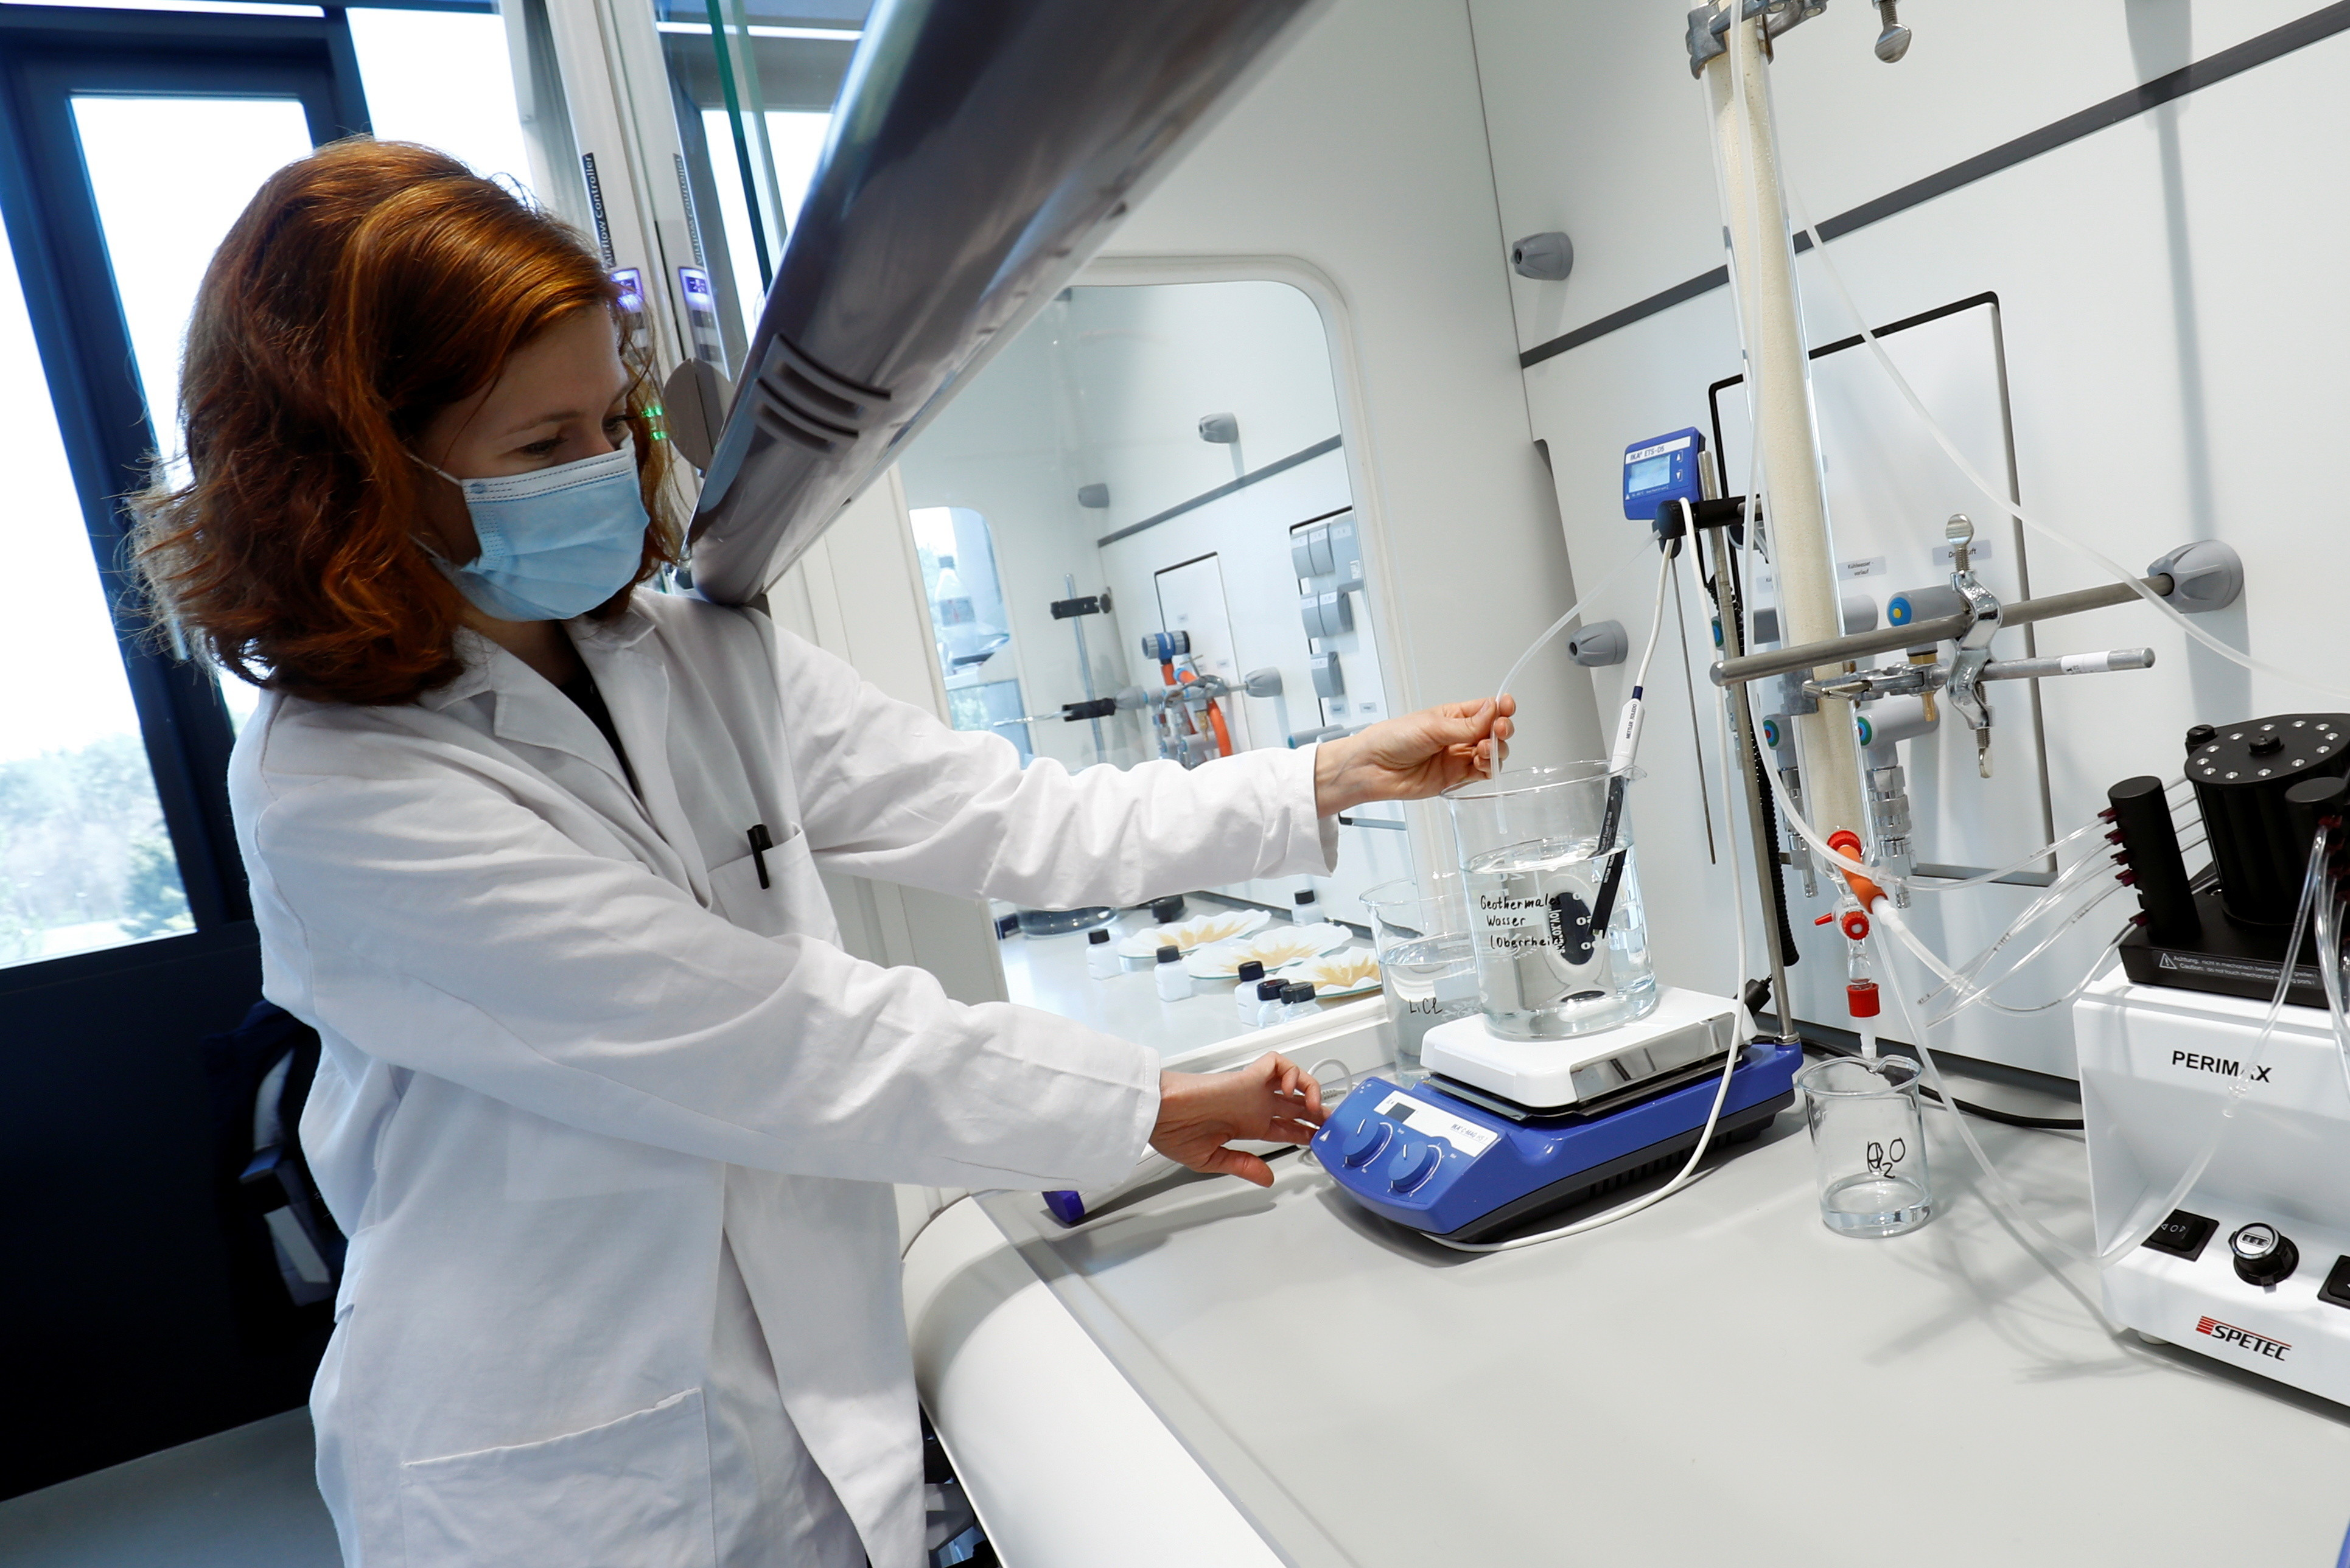 A woman dressed in a lab coat tends to a scientific experiment.